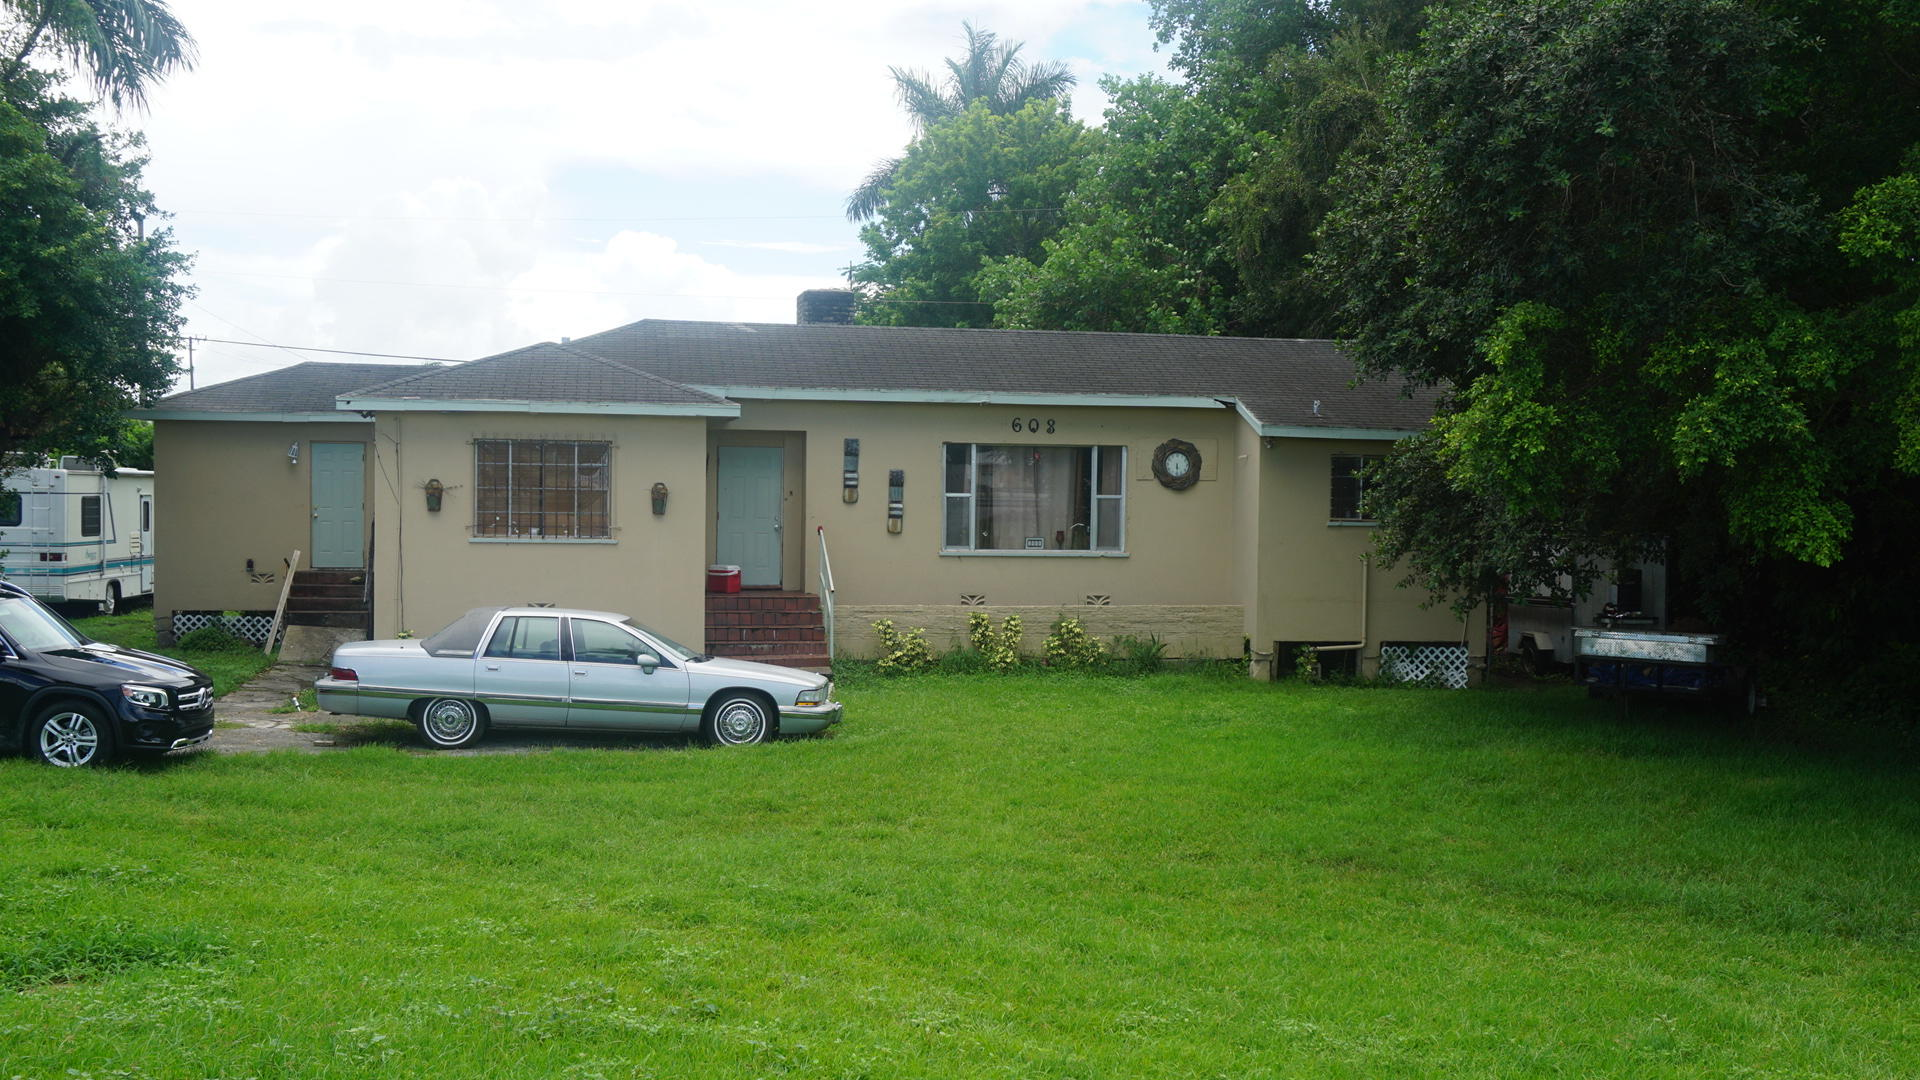 Home for sale in Royal Palm Belle Glade Florida